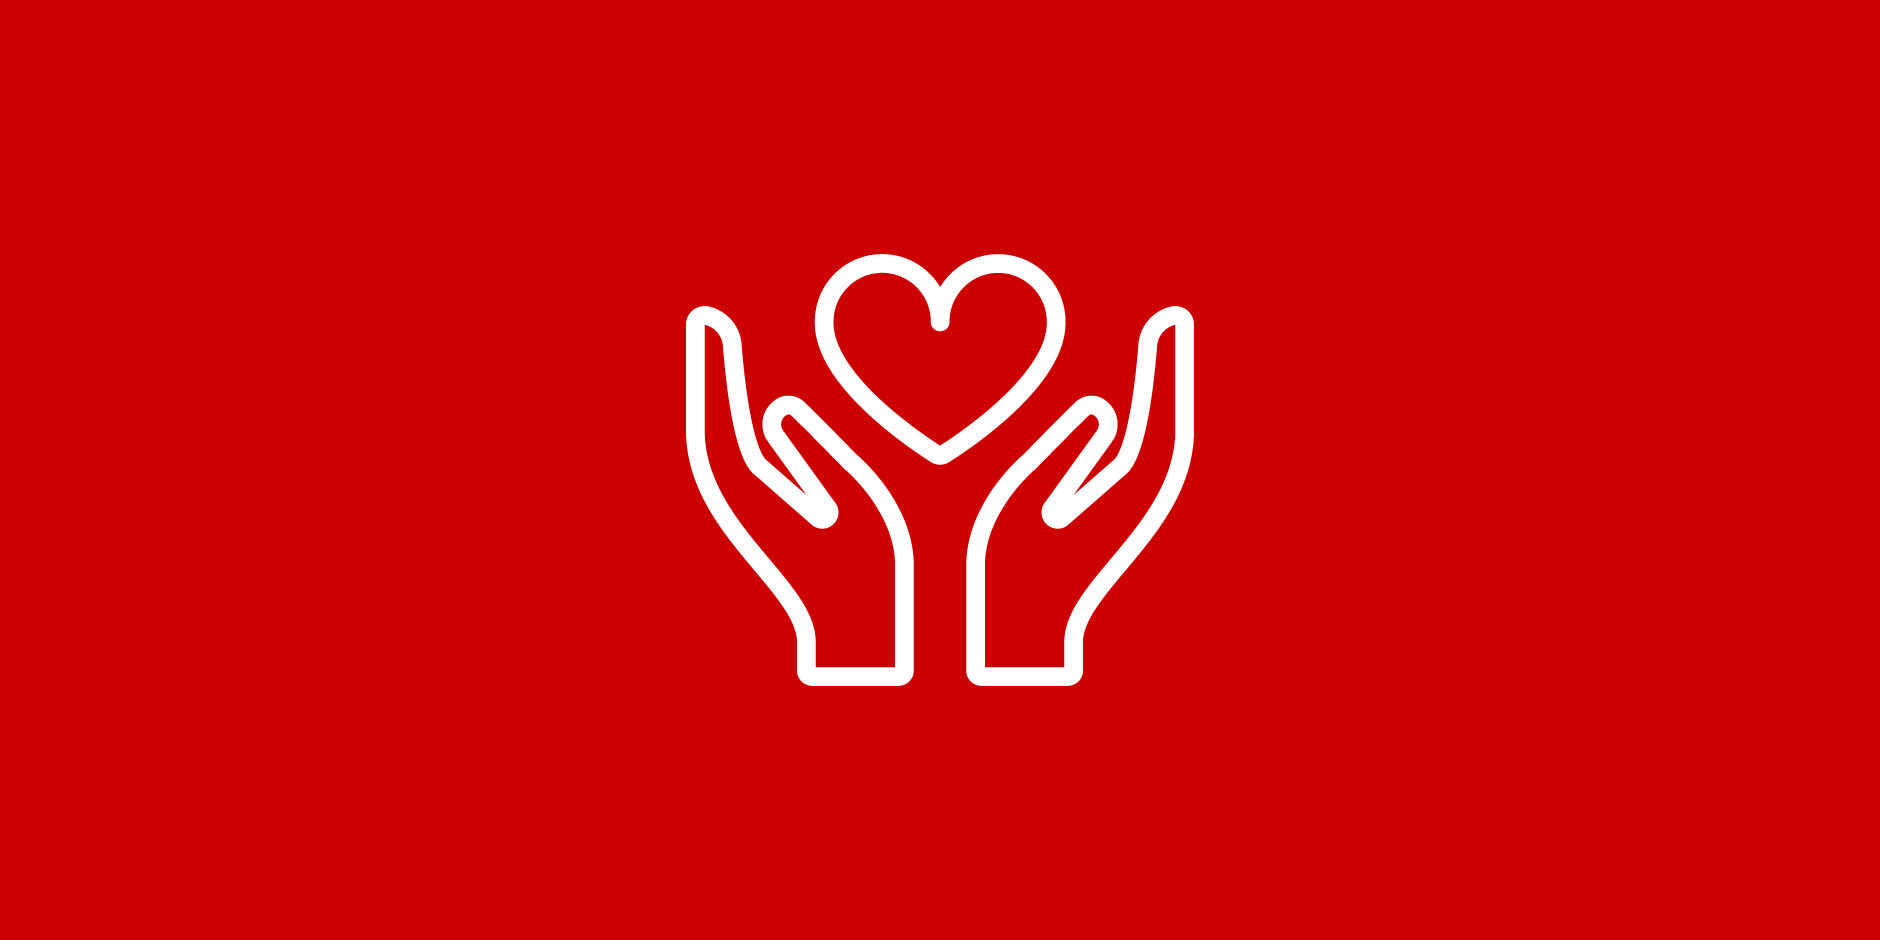 An illustration of two hands holding a heart in white outline against a red background